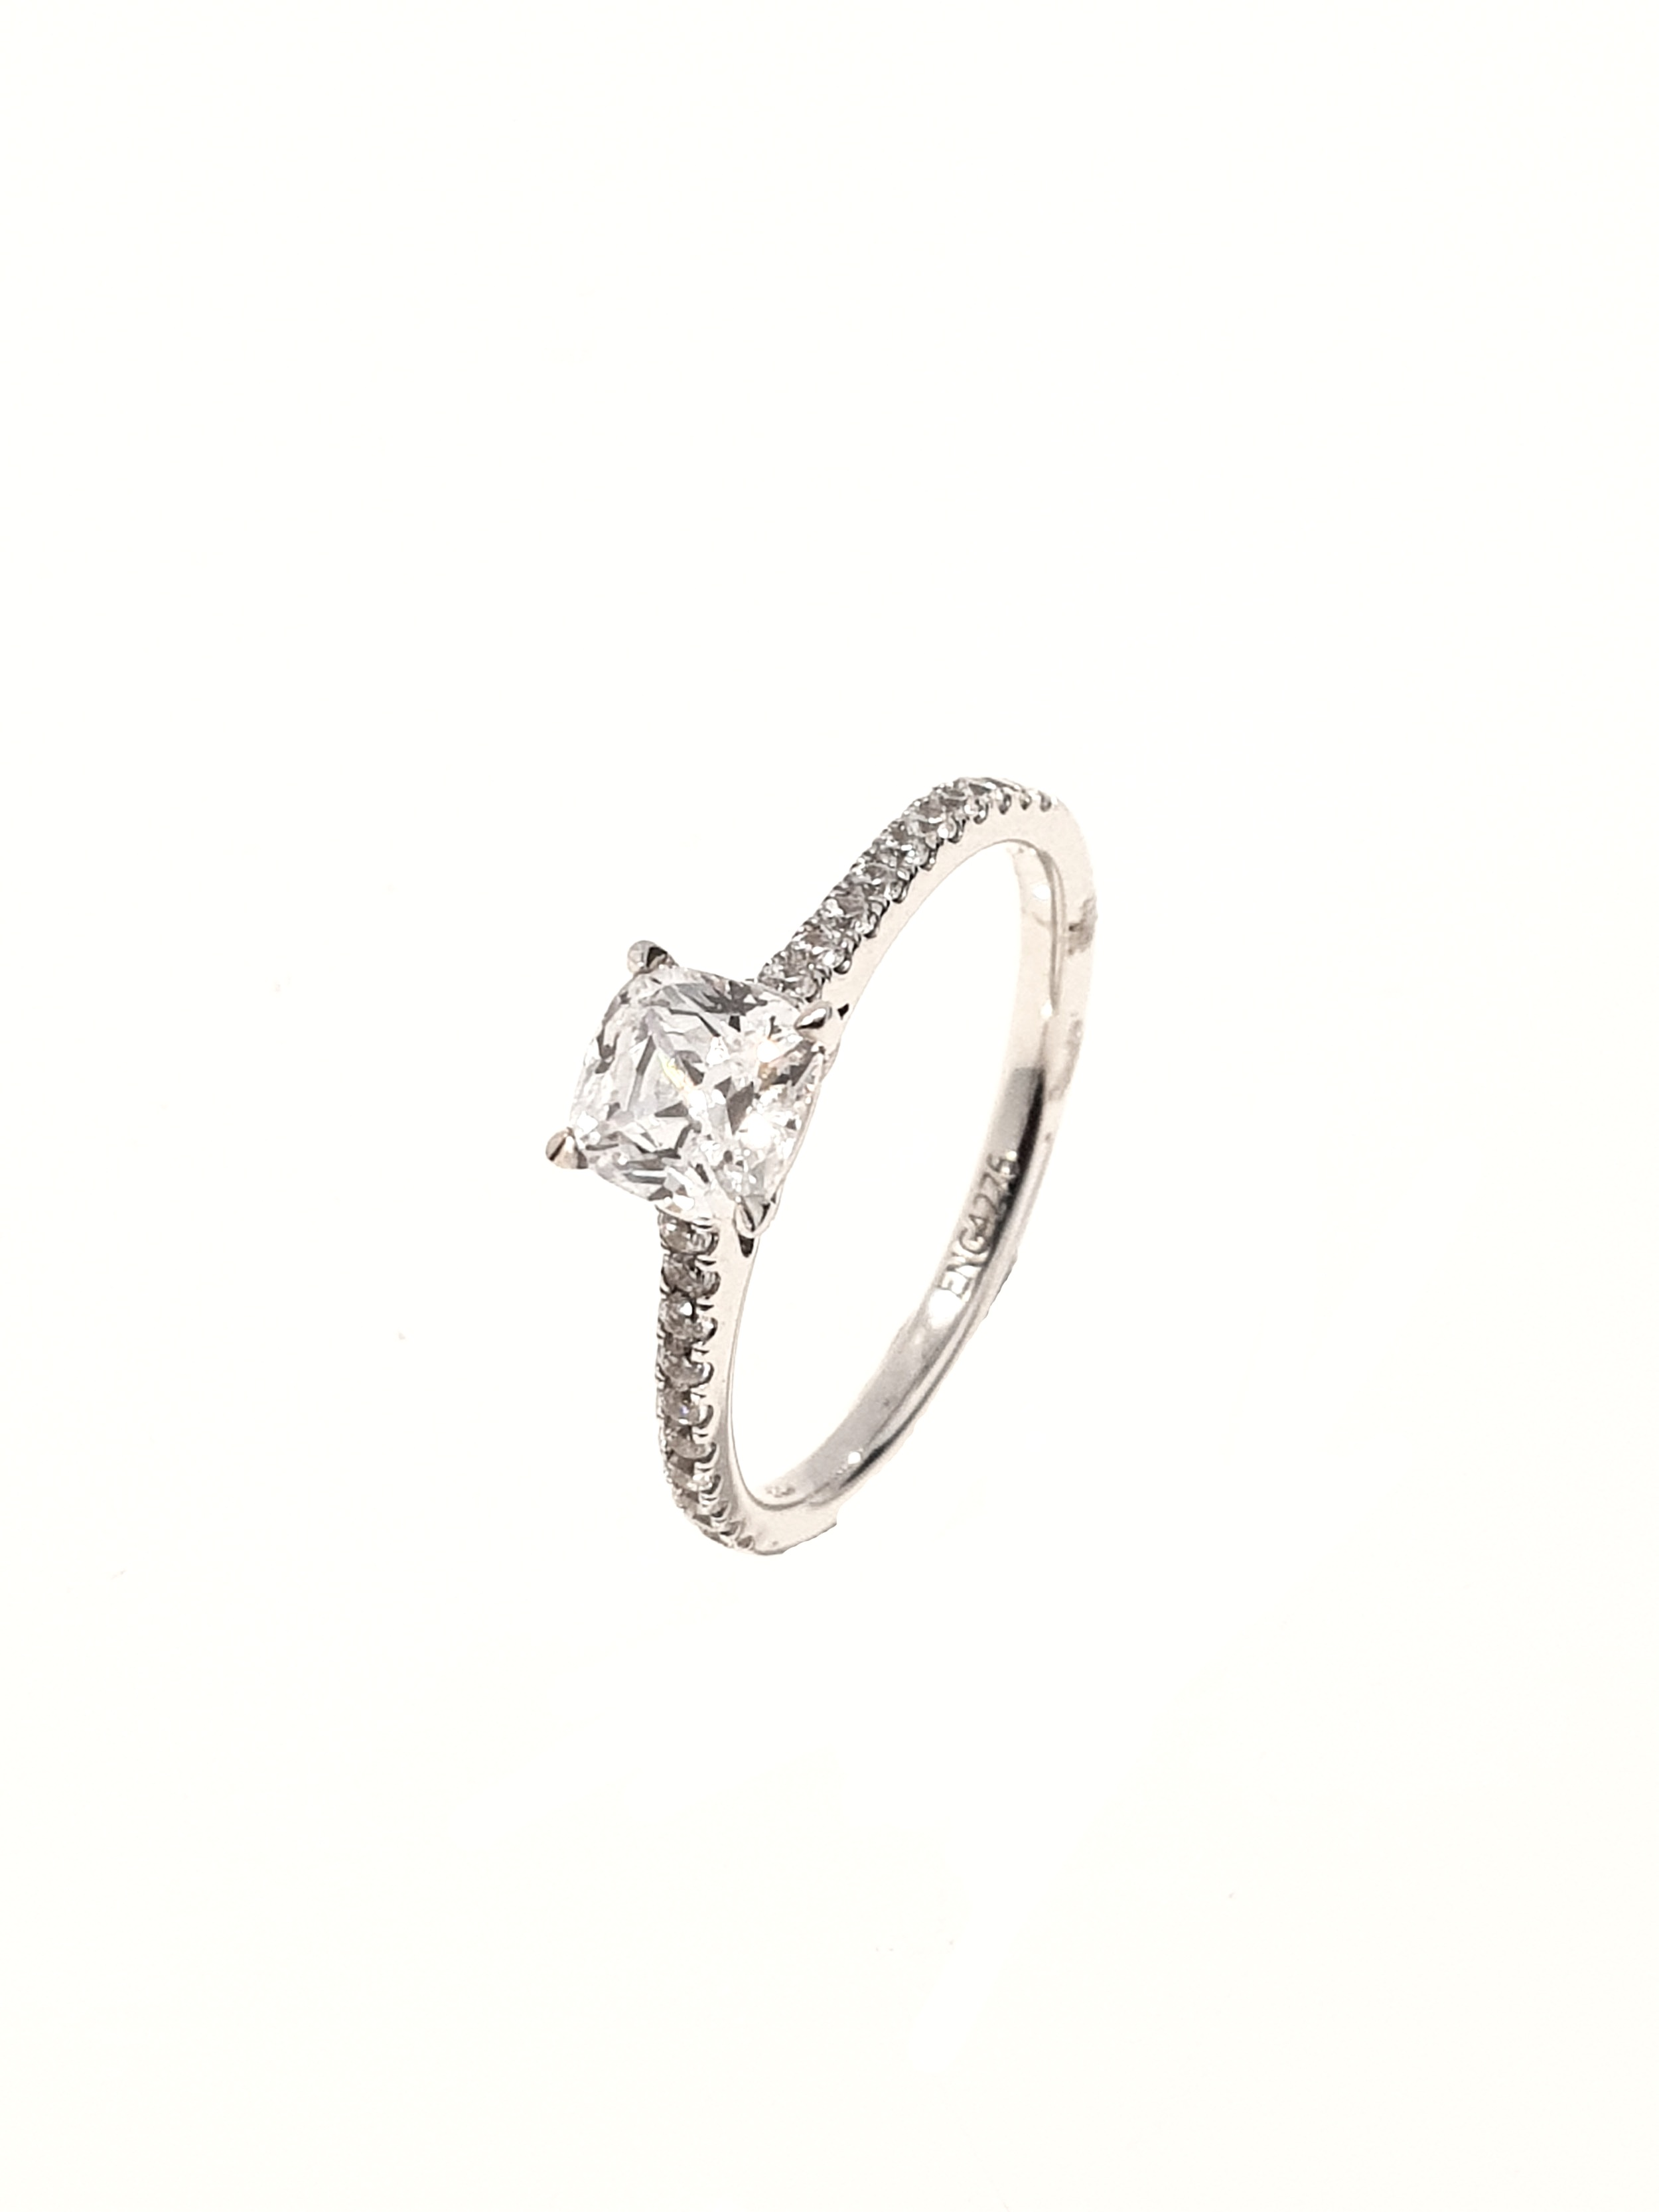 Raphael Collection, Cushion Diamond Set Ring  .70ct, G, SI1 + .20ct shoulders.  Stock Code: Z1411  18ct White Gold: £2450  Platinum: £2575  Made To Order, approx 3 weeks.